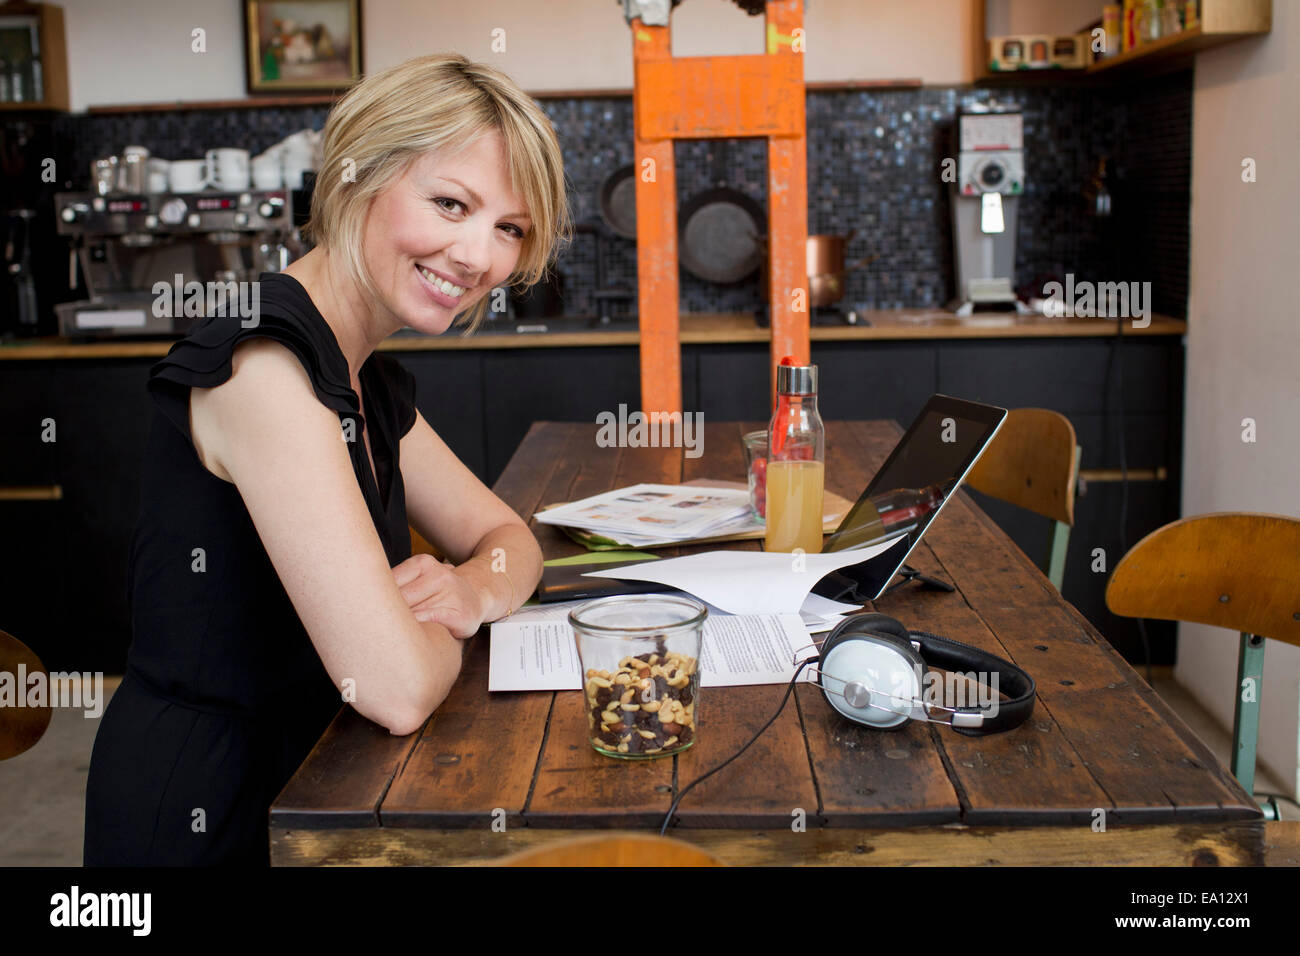 Mid adult woman in cafe with paperwork - Stock Image